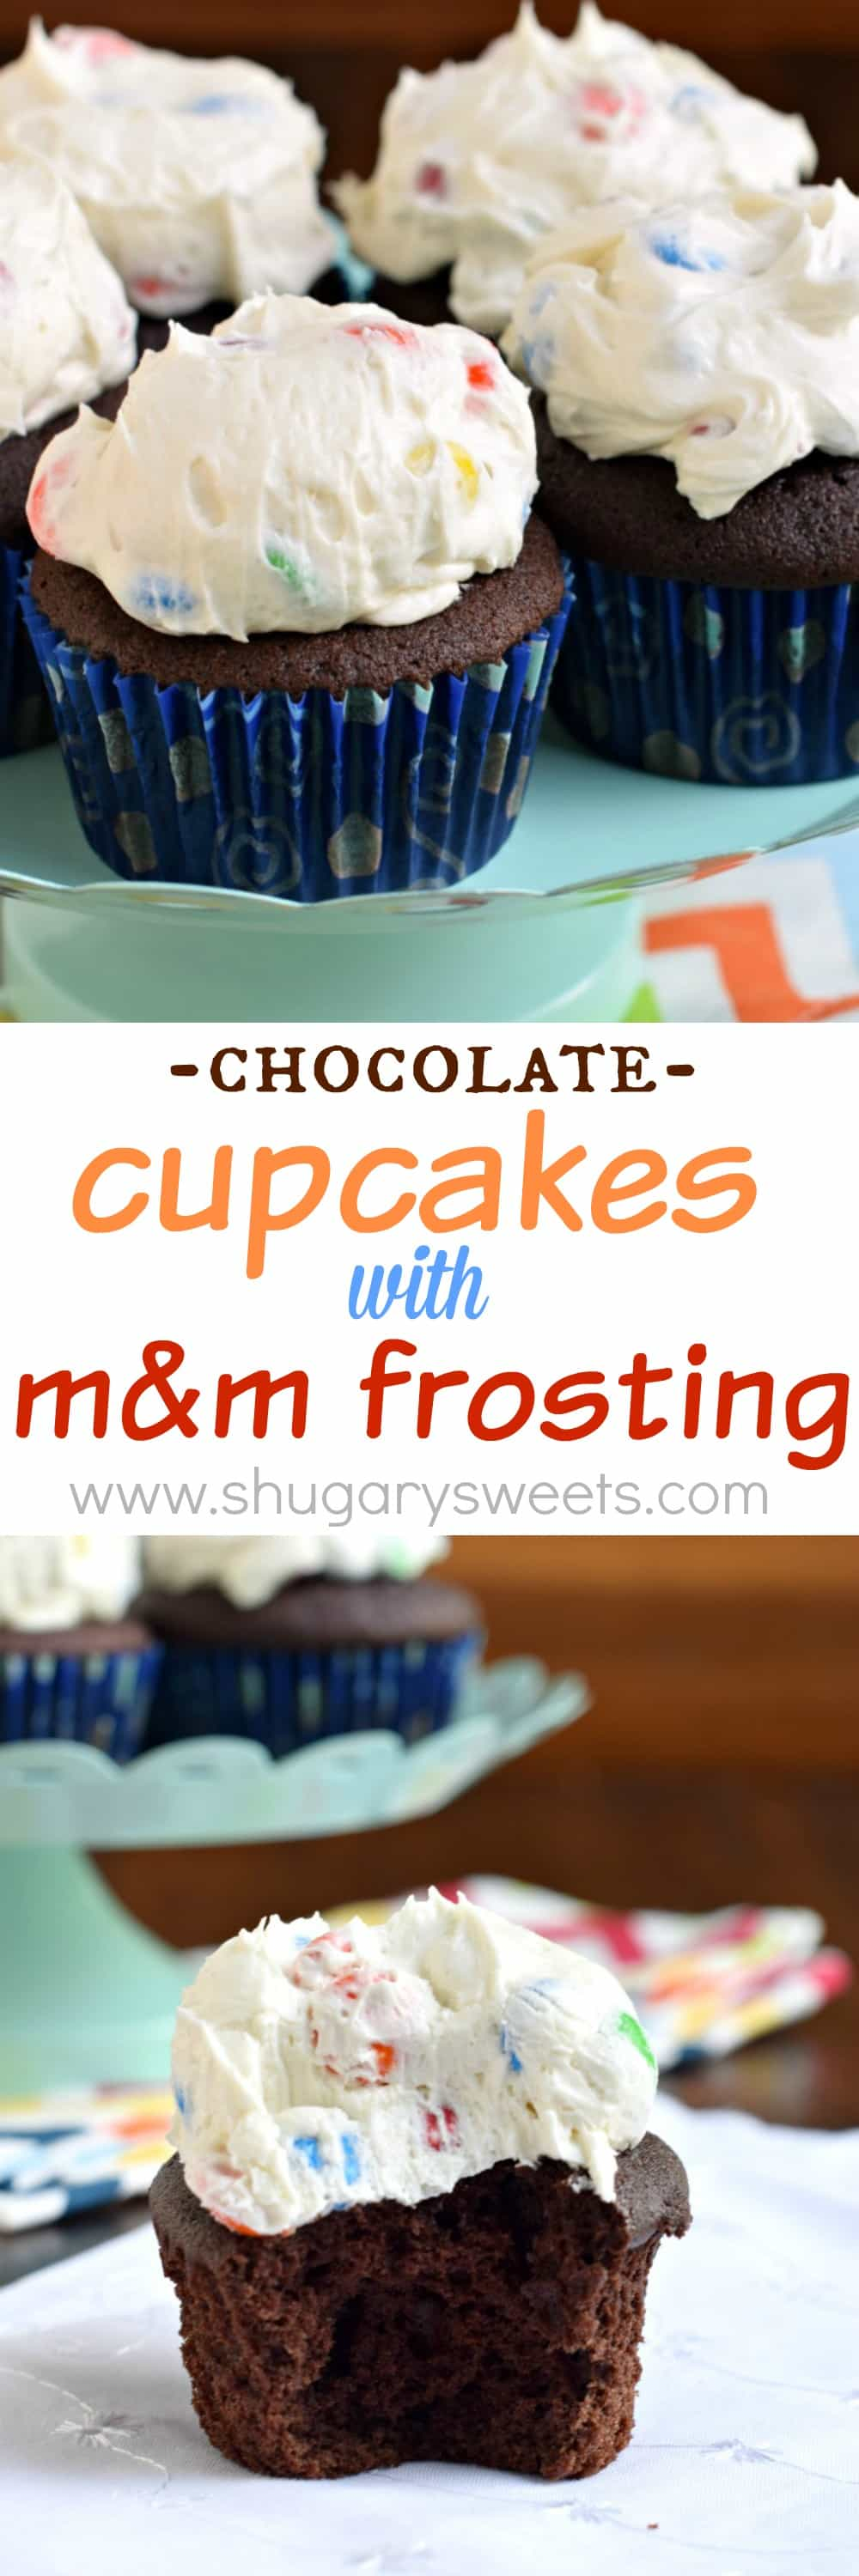 Shugary Sweets: Chocolate Cupcakes With M&m Frosting